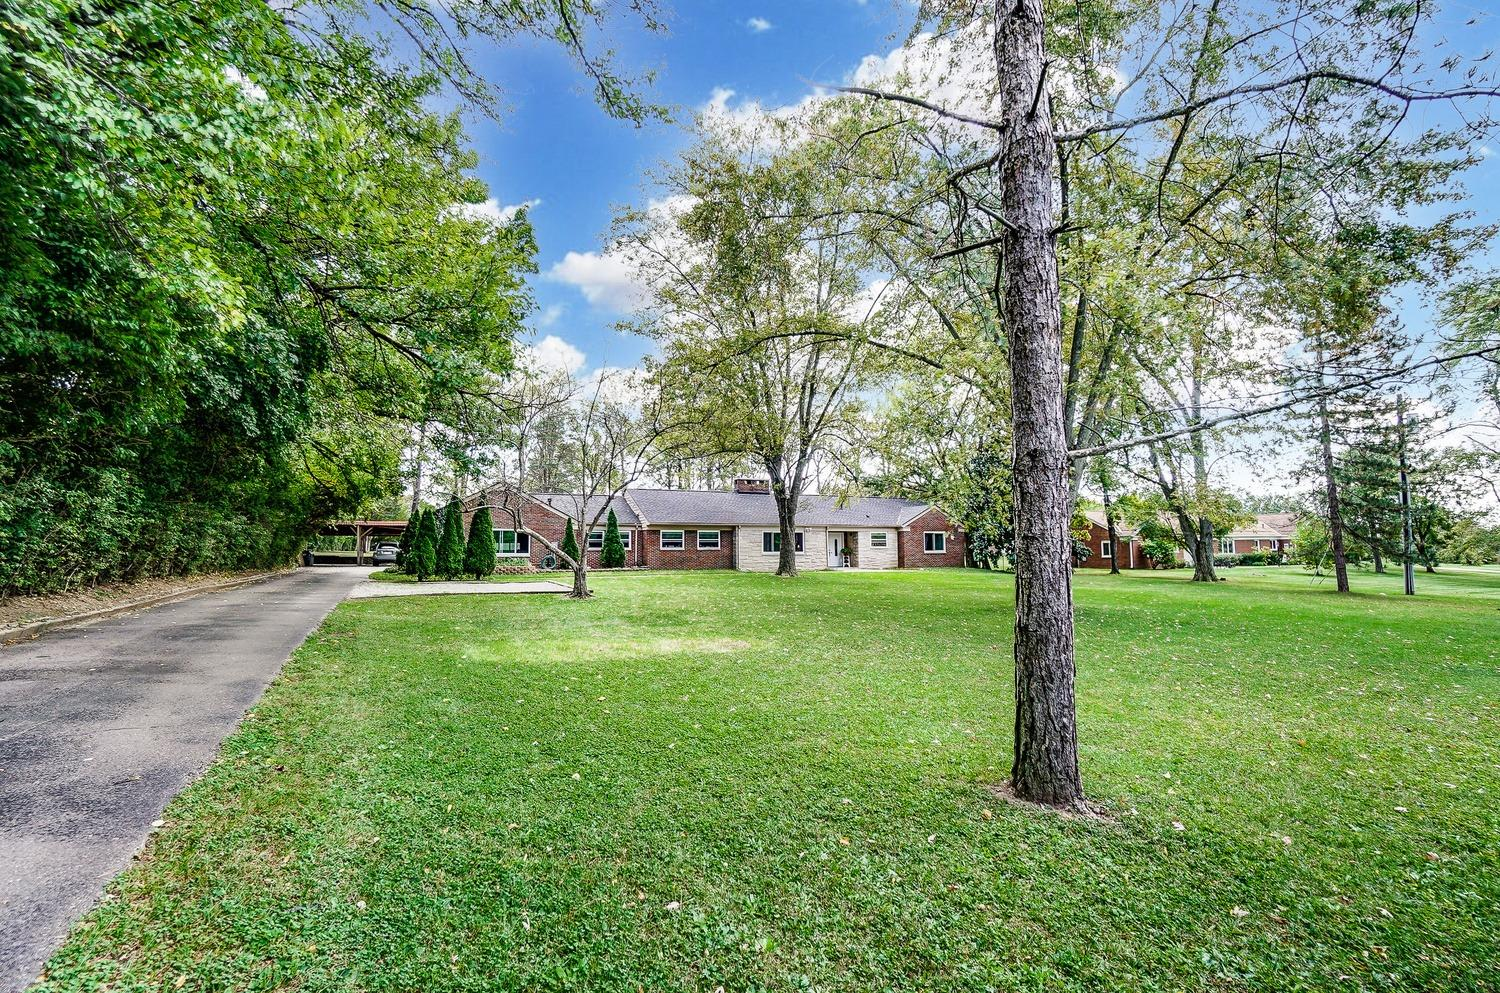 Photo 3 for 413 N Marshall Road Middletown North, OH 45042